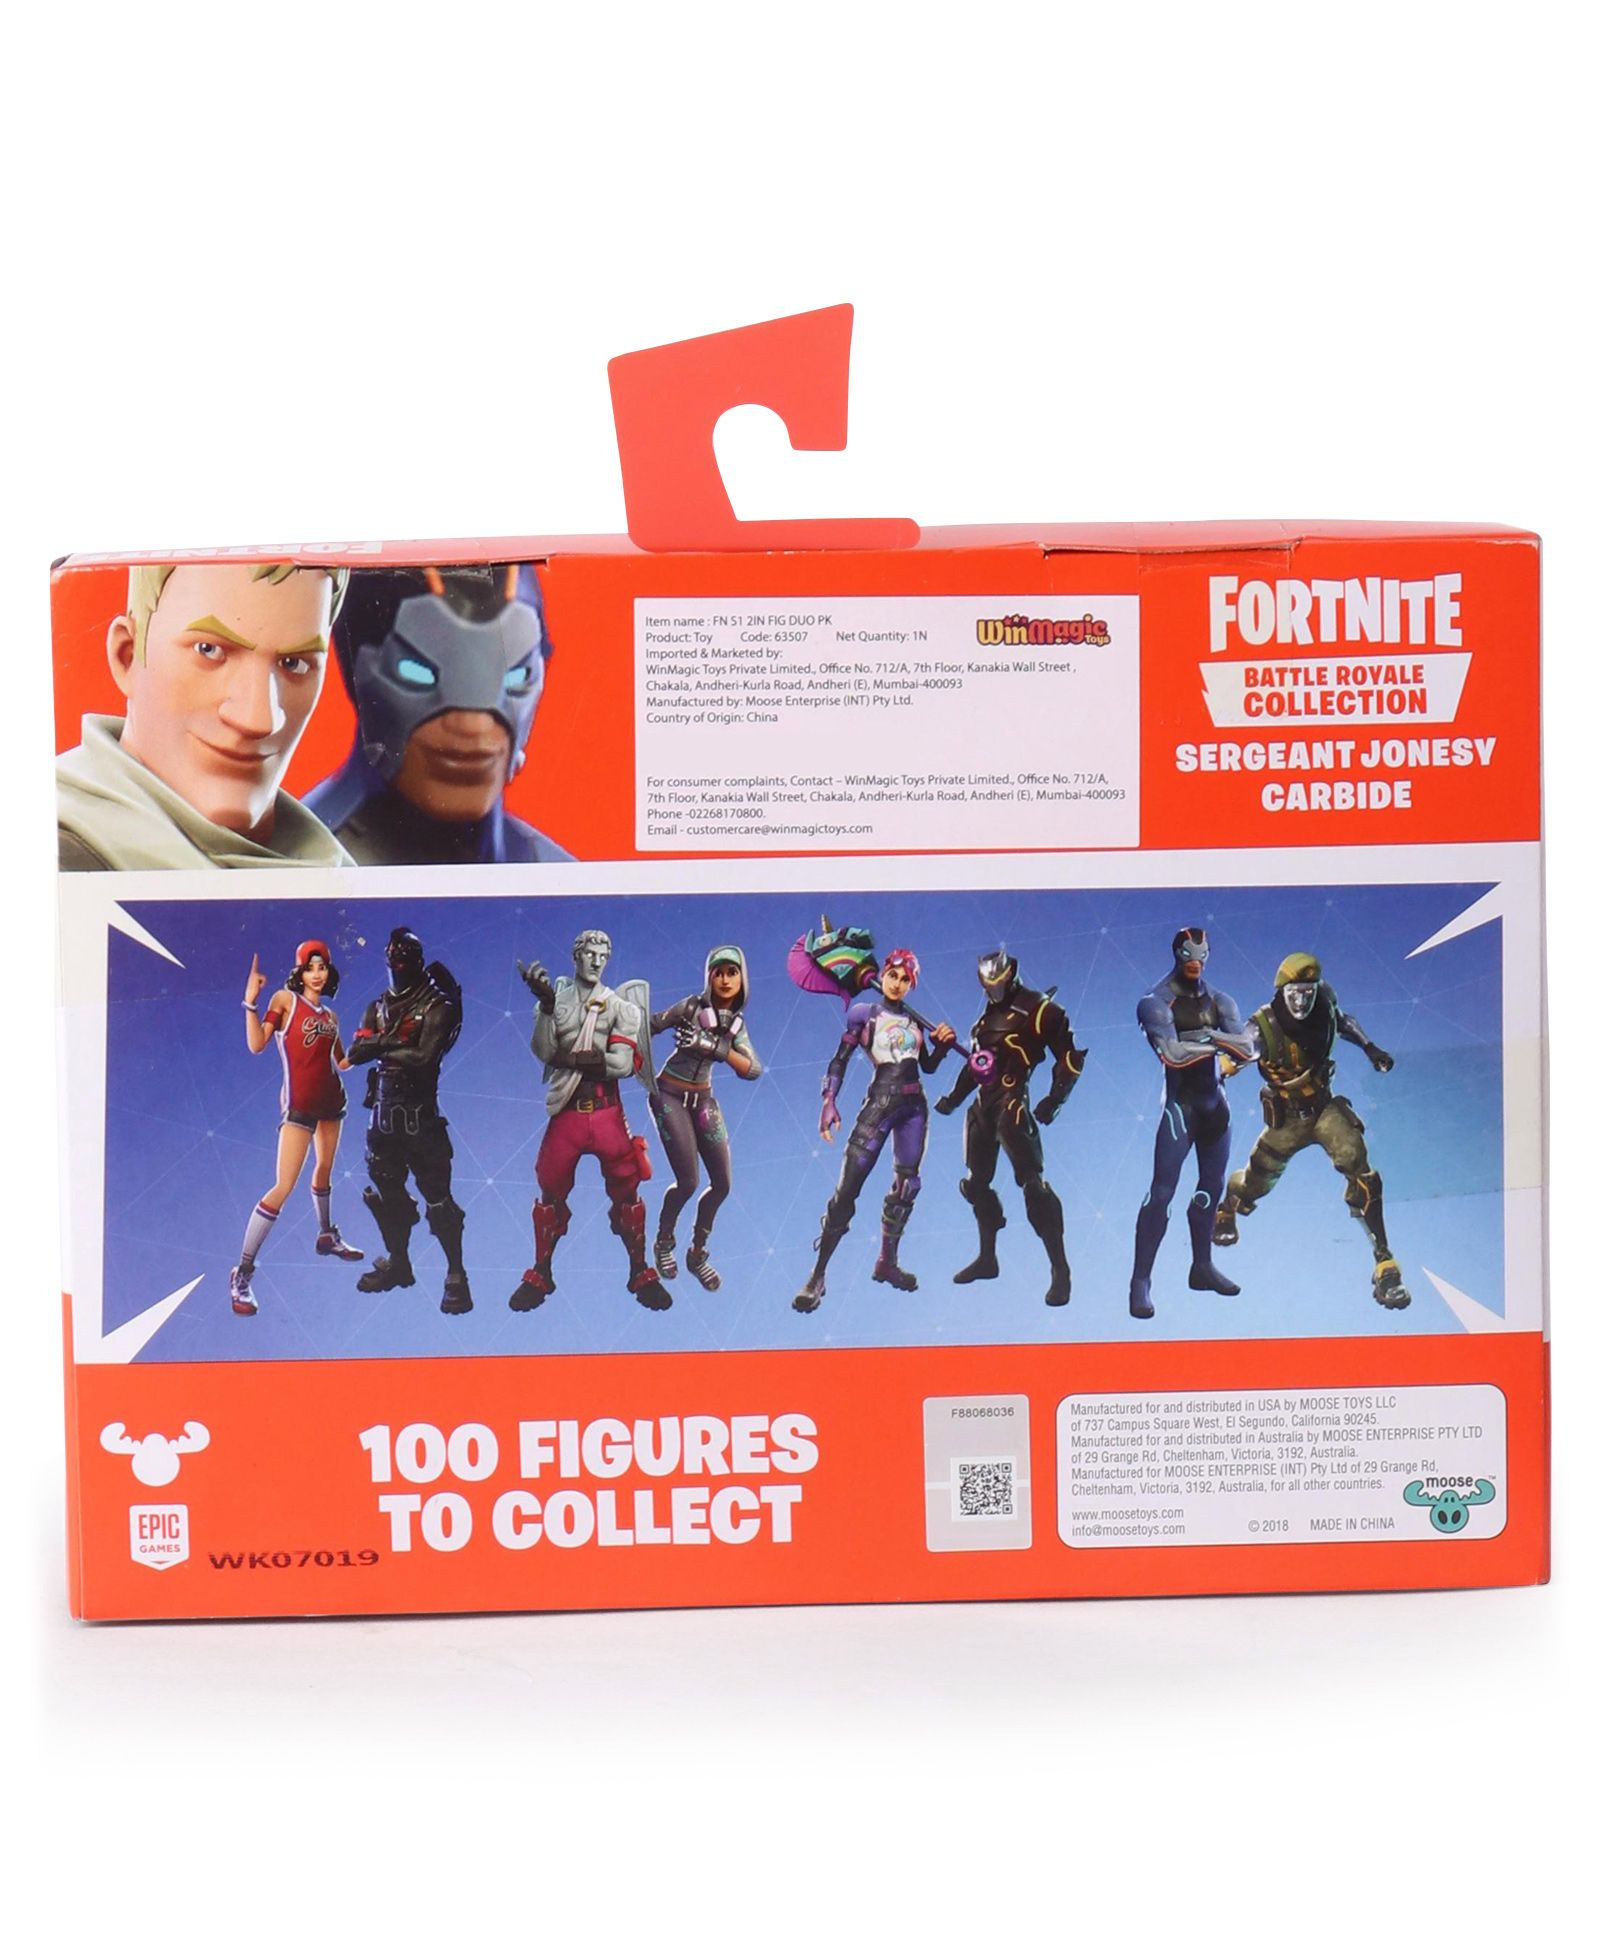 fortnite battle royale collection sergeant jonesy carbide action figures multicolour 5 cm online india buy figures playsets for 8 10 years at firstcry com 2862285 fortnite battle royale collection